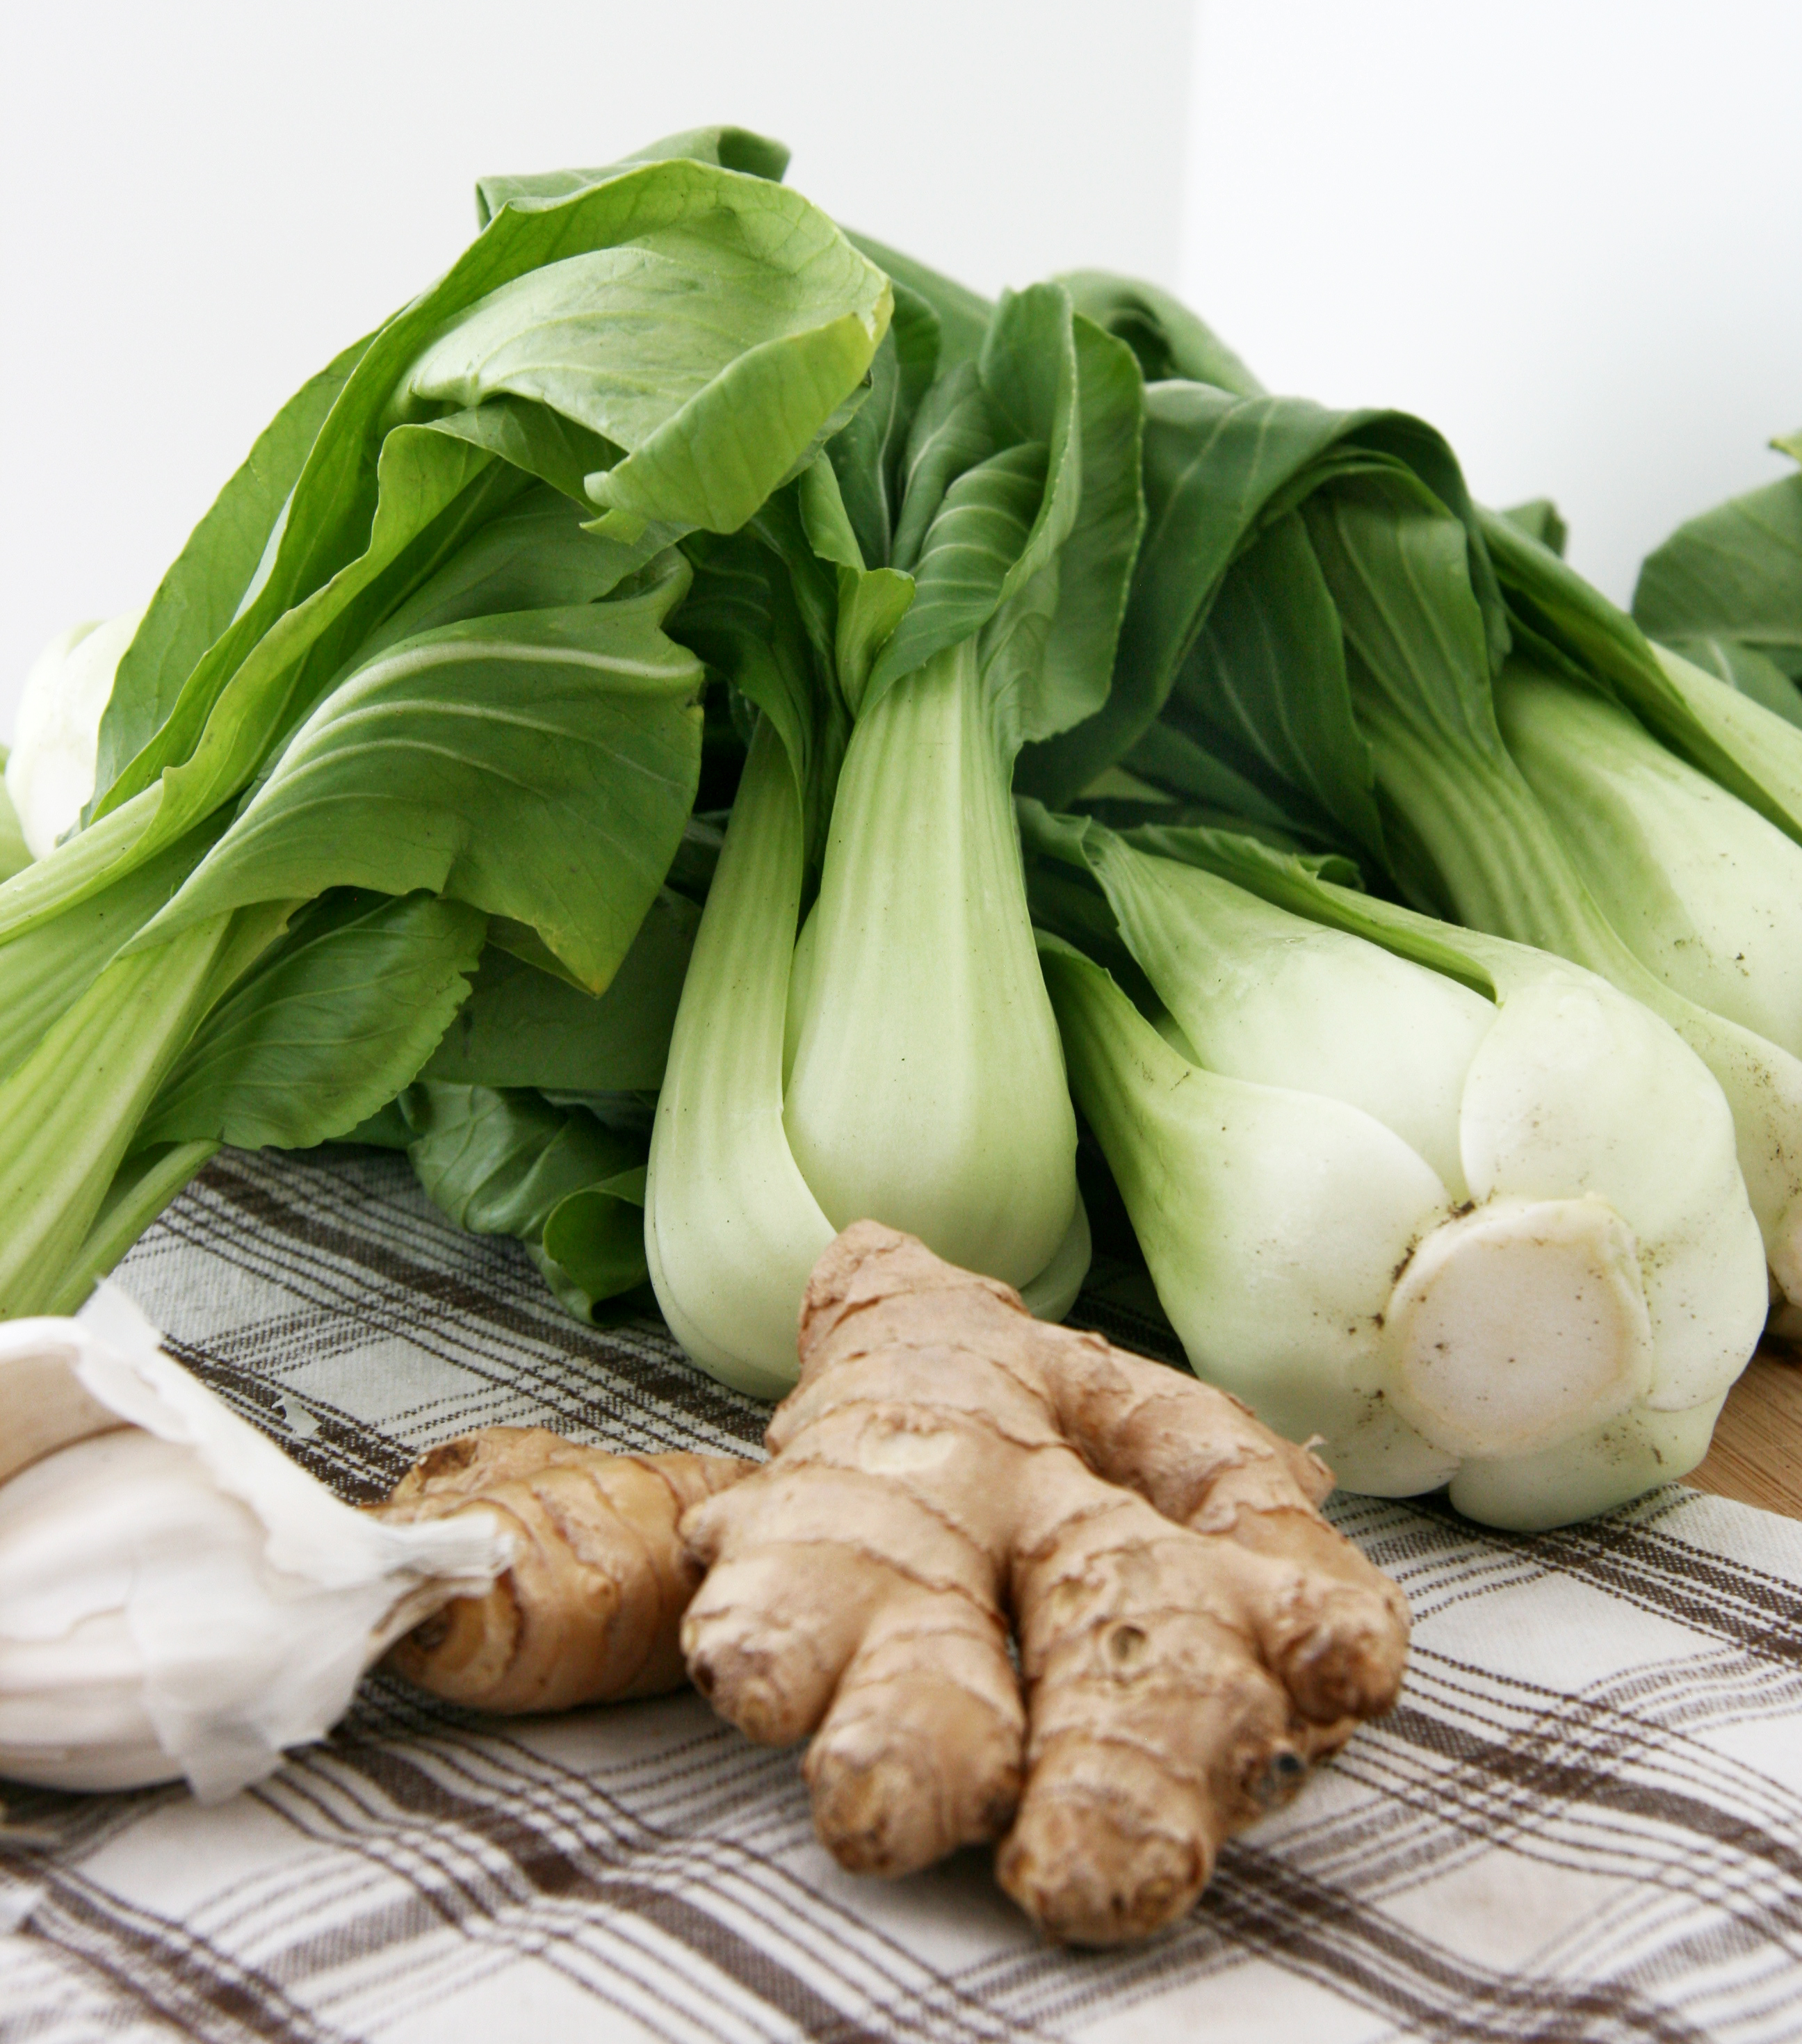 ... perfect pantry recipe for bok choy stir fry with ginger and garlic